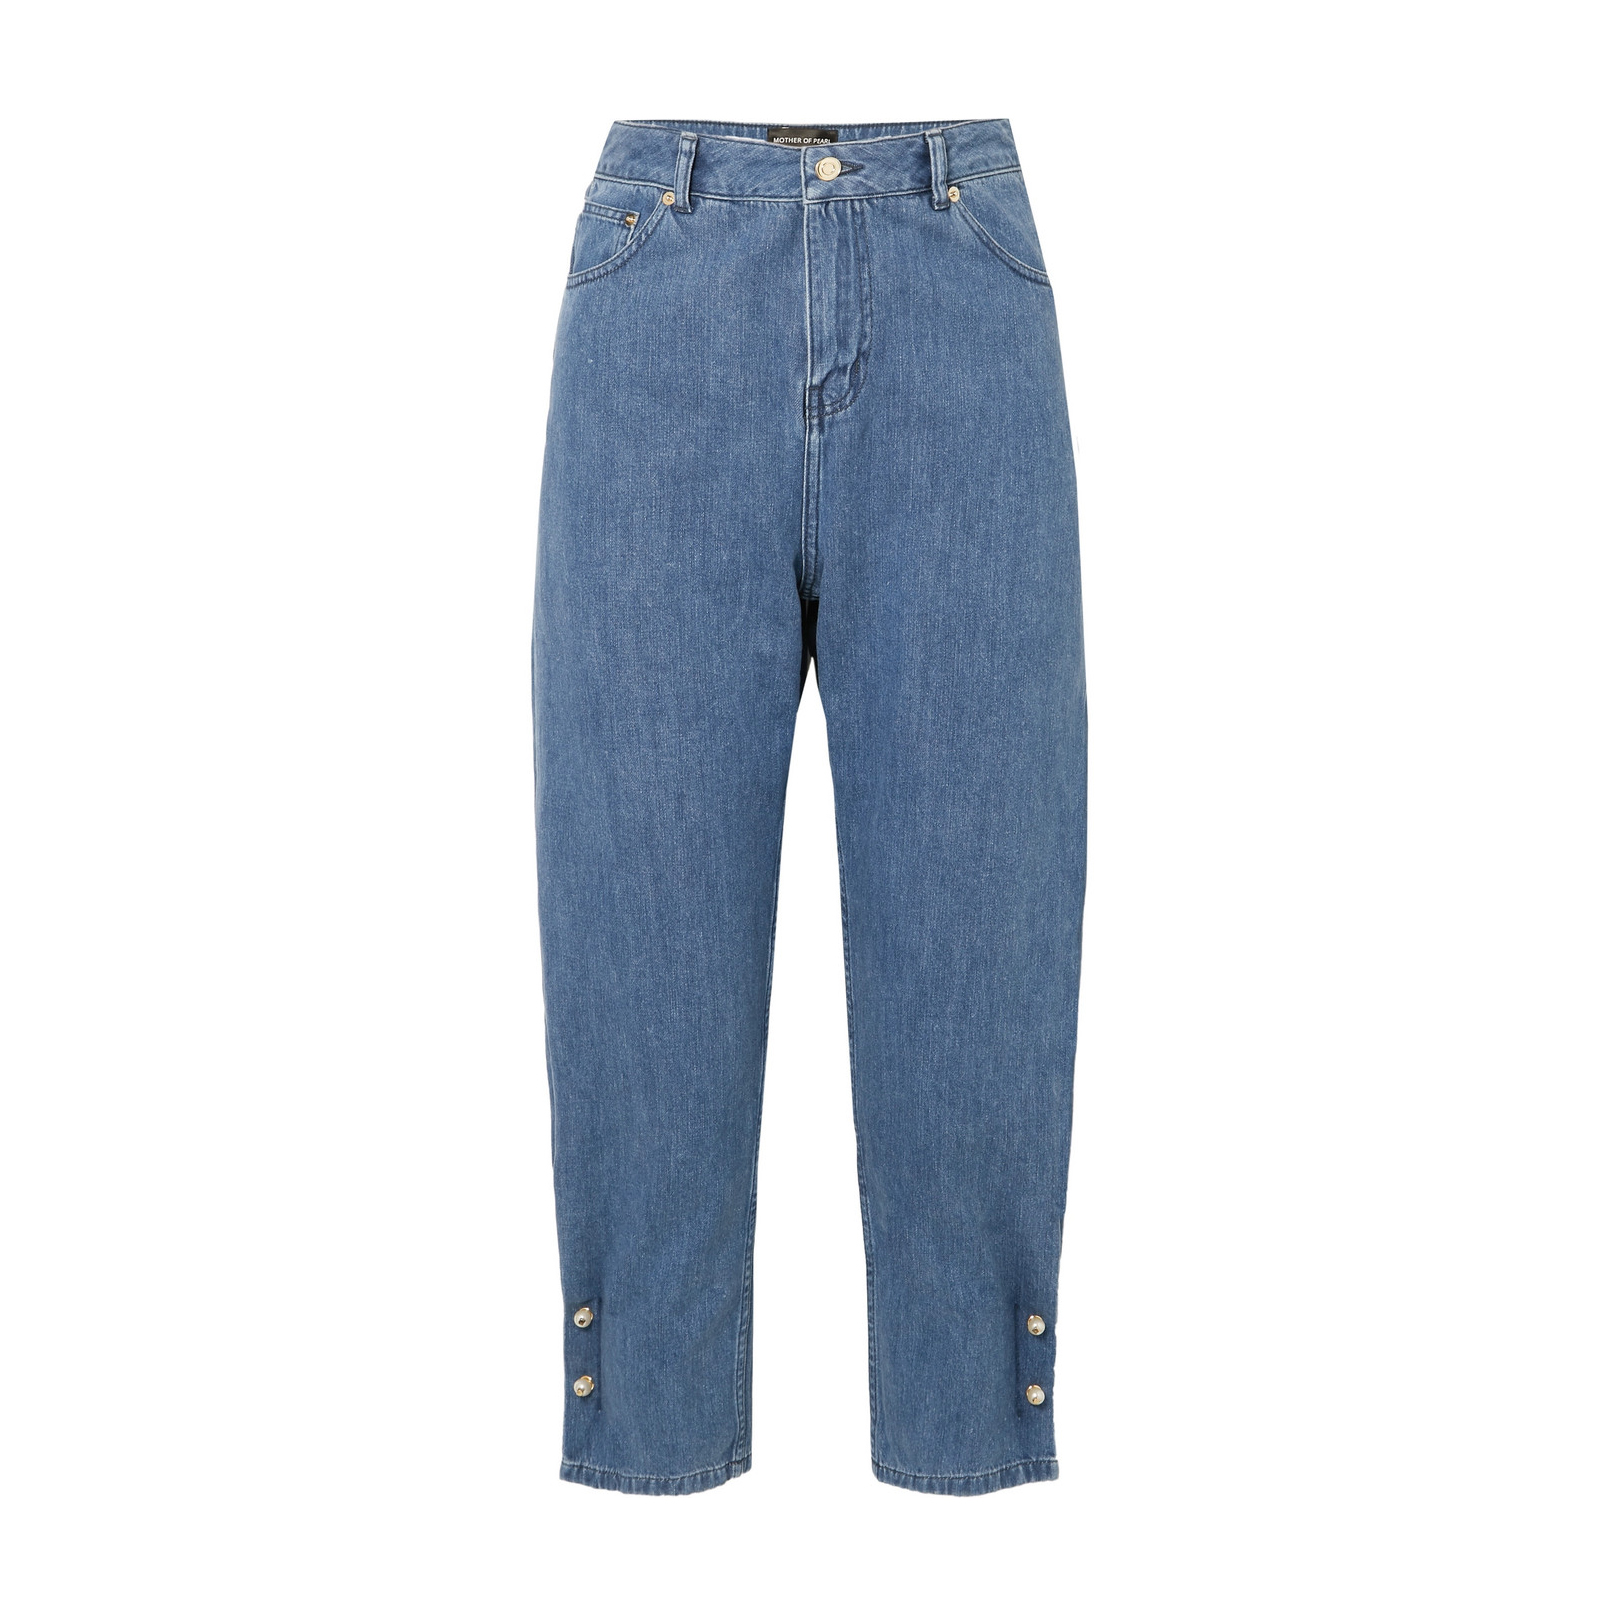 + NET SUSTAIN Kyra Faux High-Rise Tapered Jean